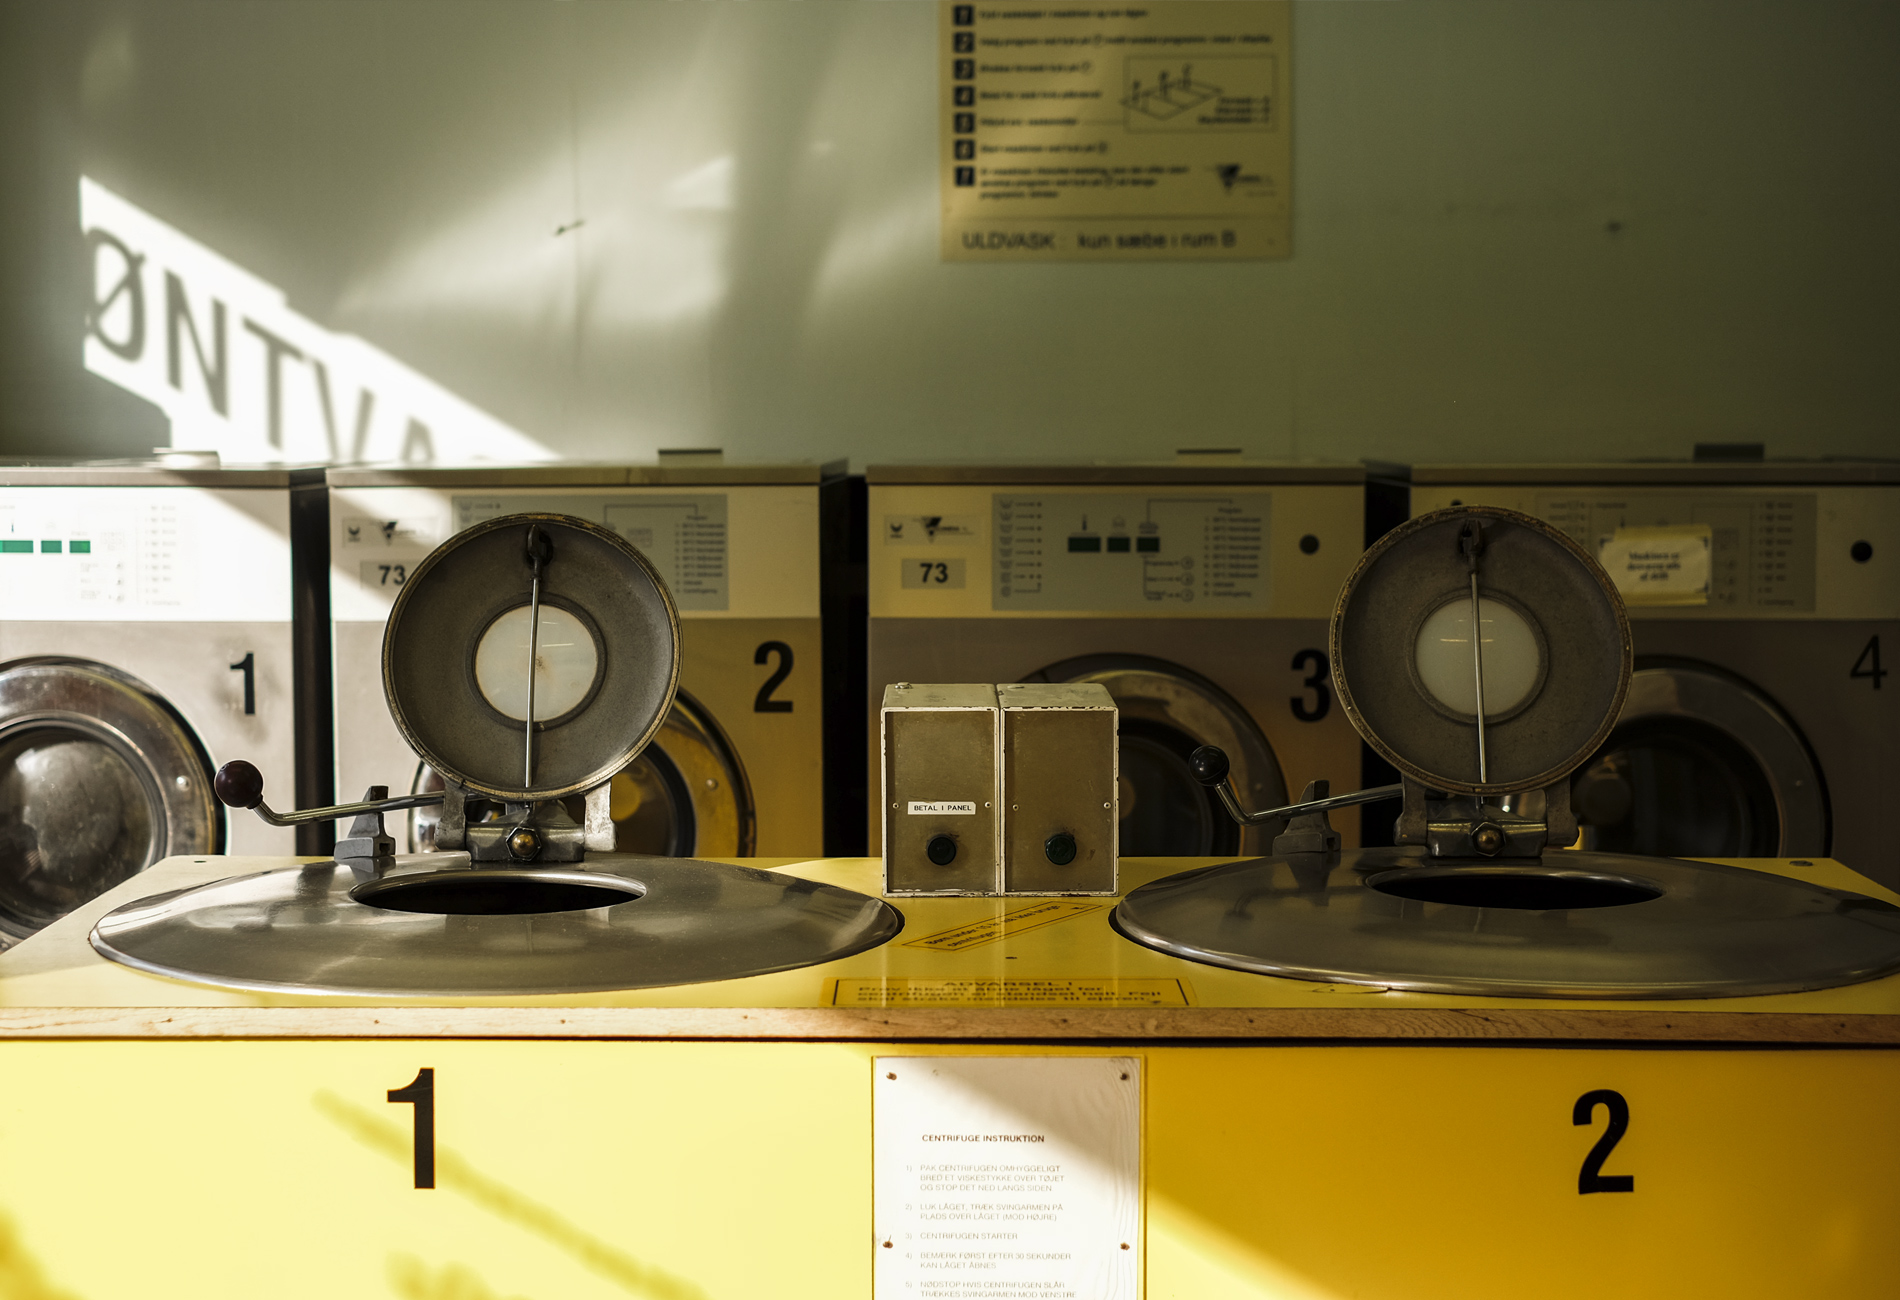 laundry with yellow machines with the numbers 1 2 3 in Copenhagen